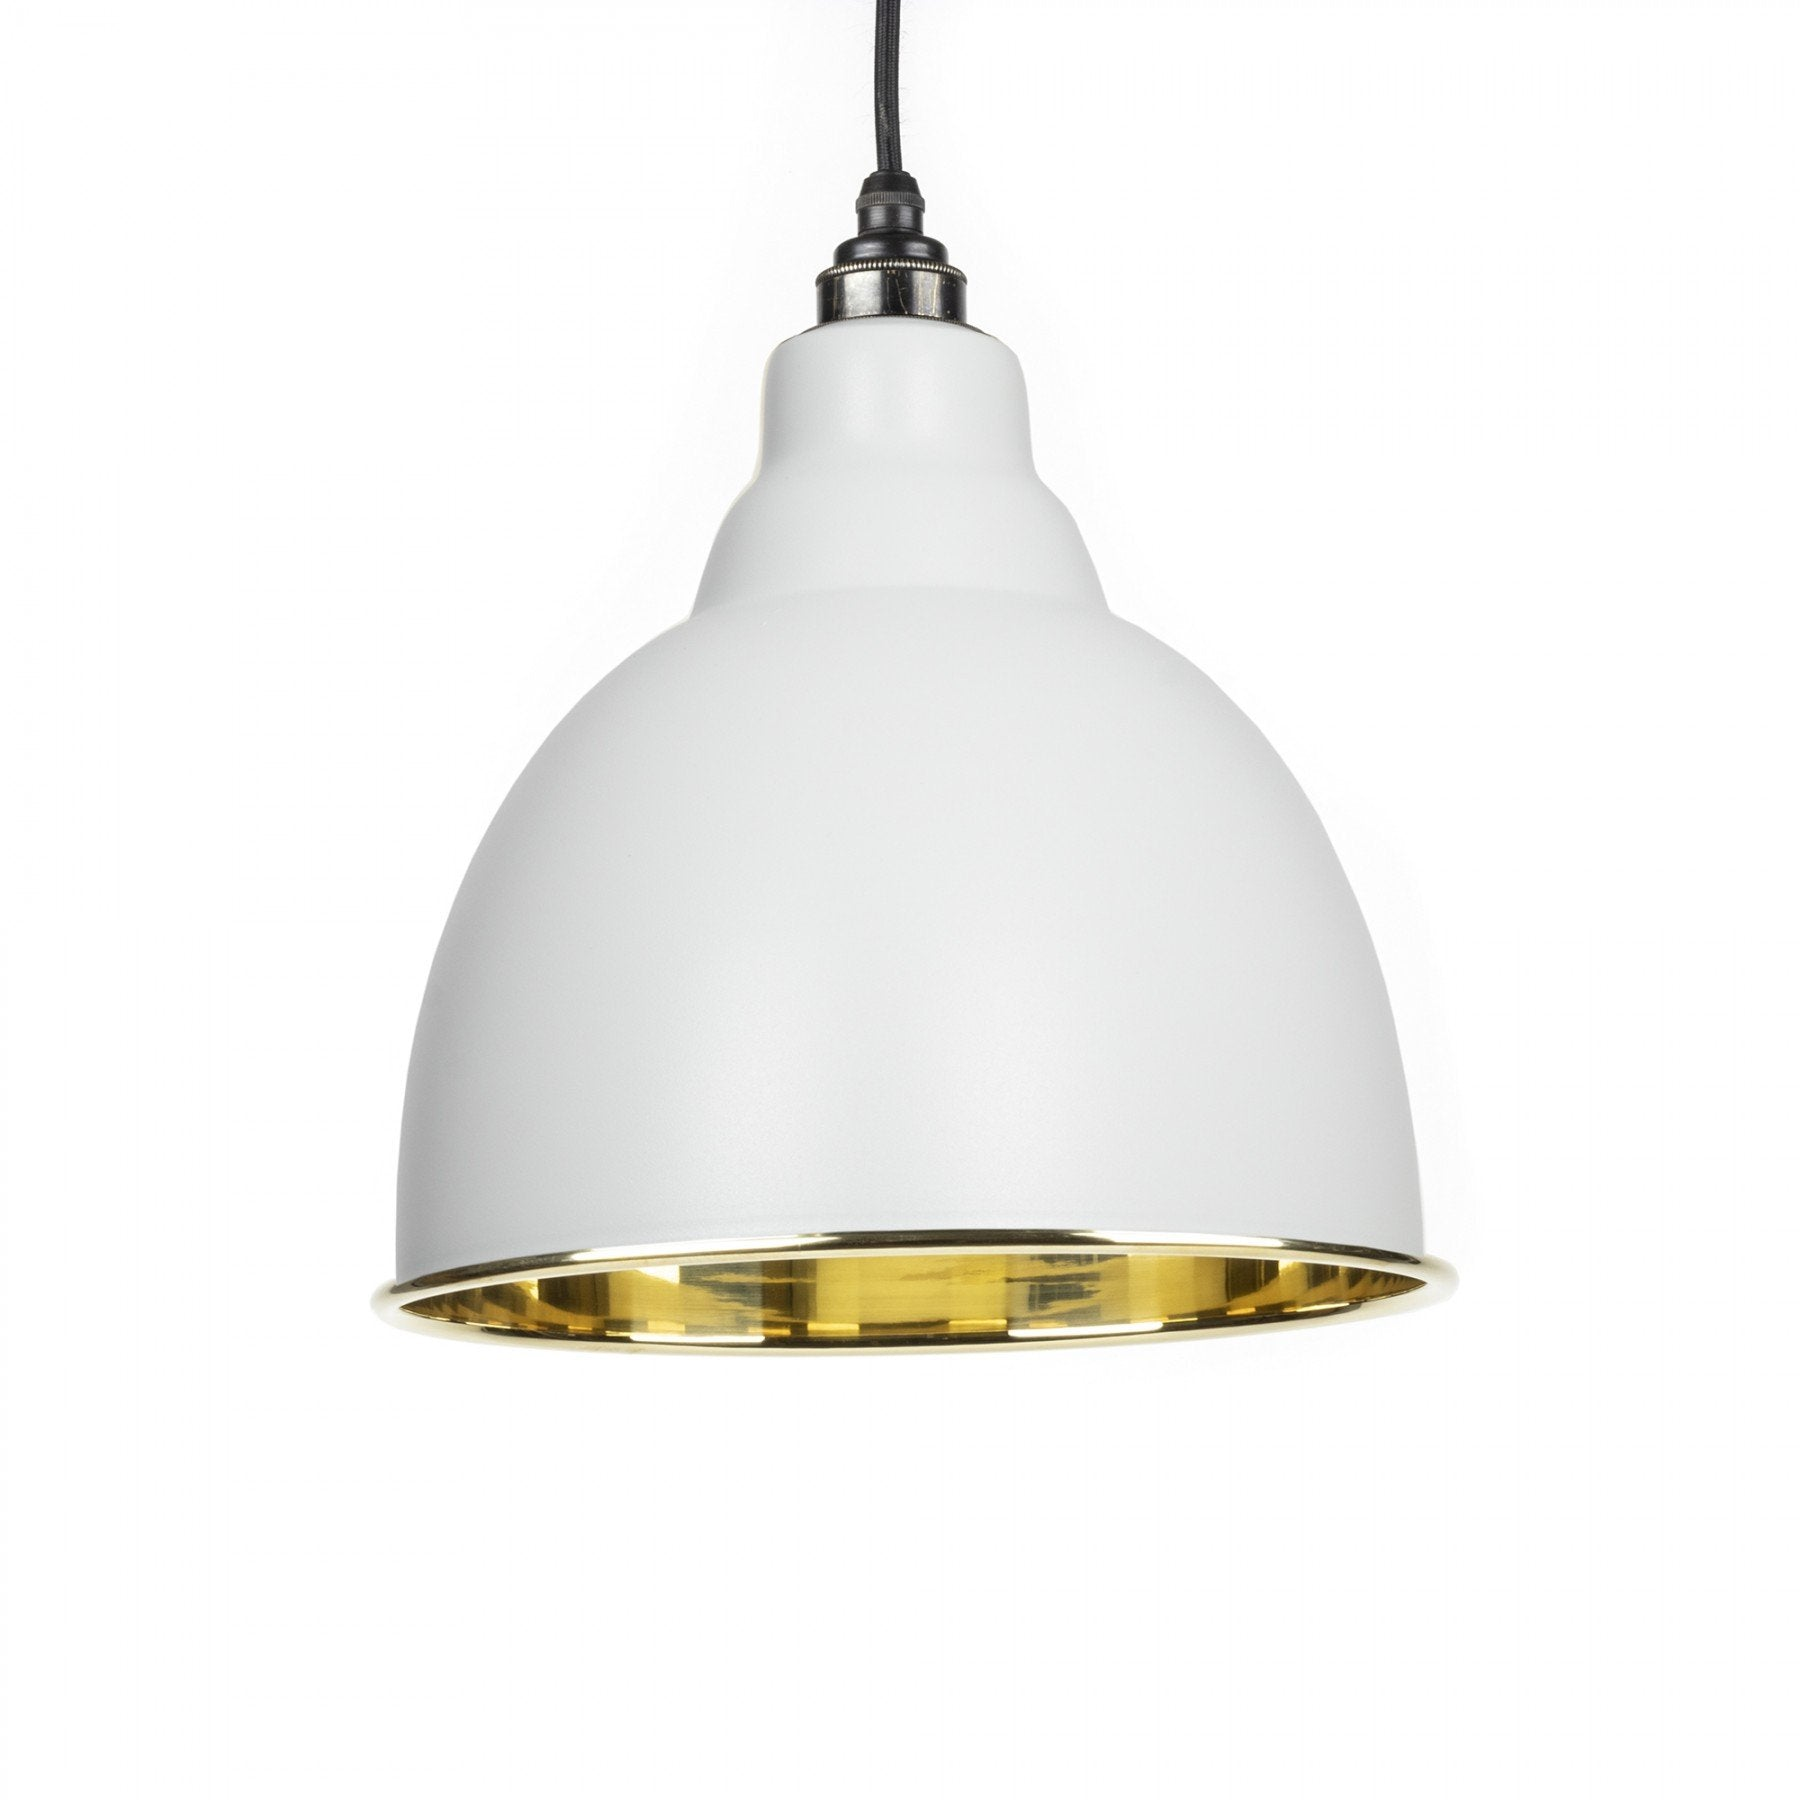 From The Anvil Light Grey & Smooth Brass Interior Brindley Pendant - No.42 Interiors